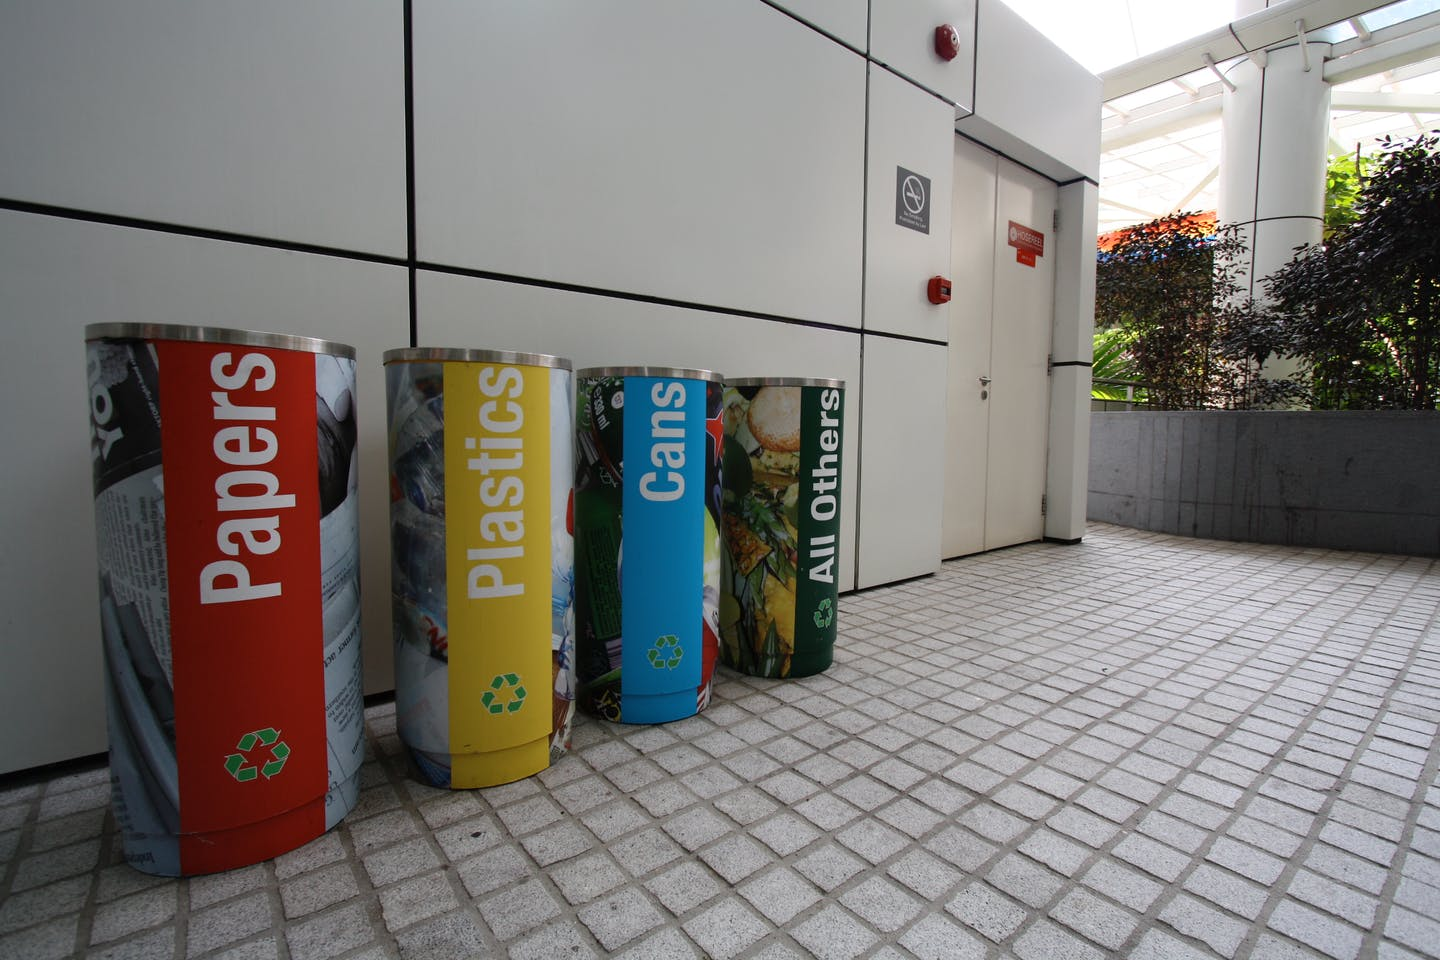 colour-coded recycling bins in SG